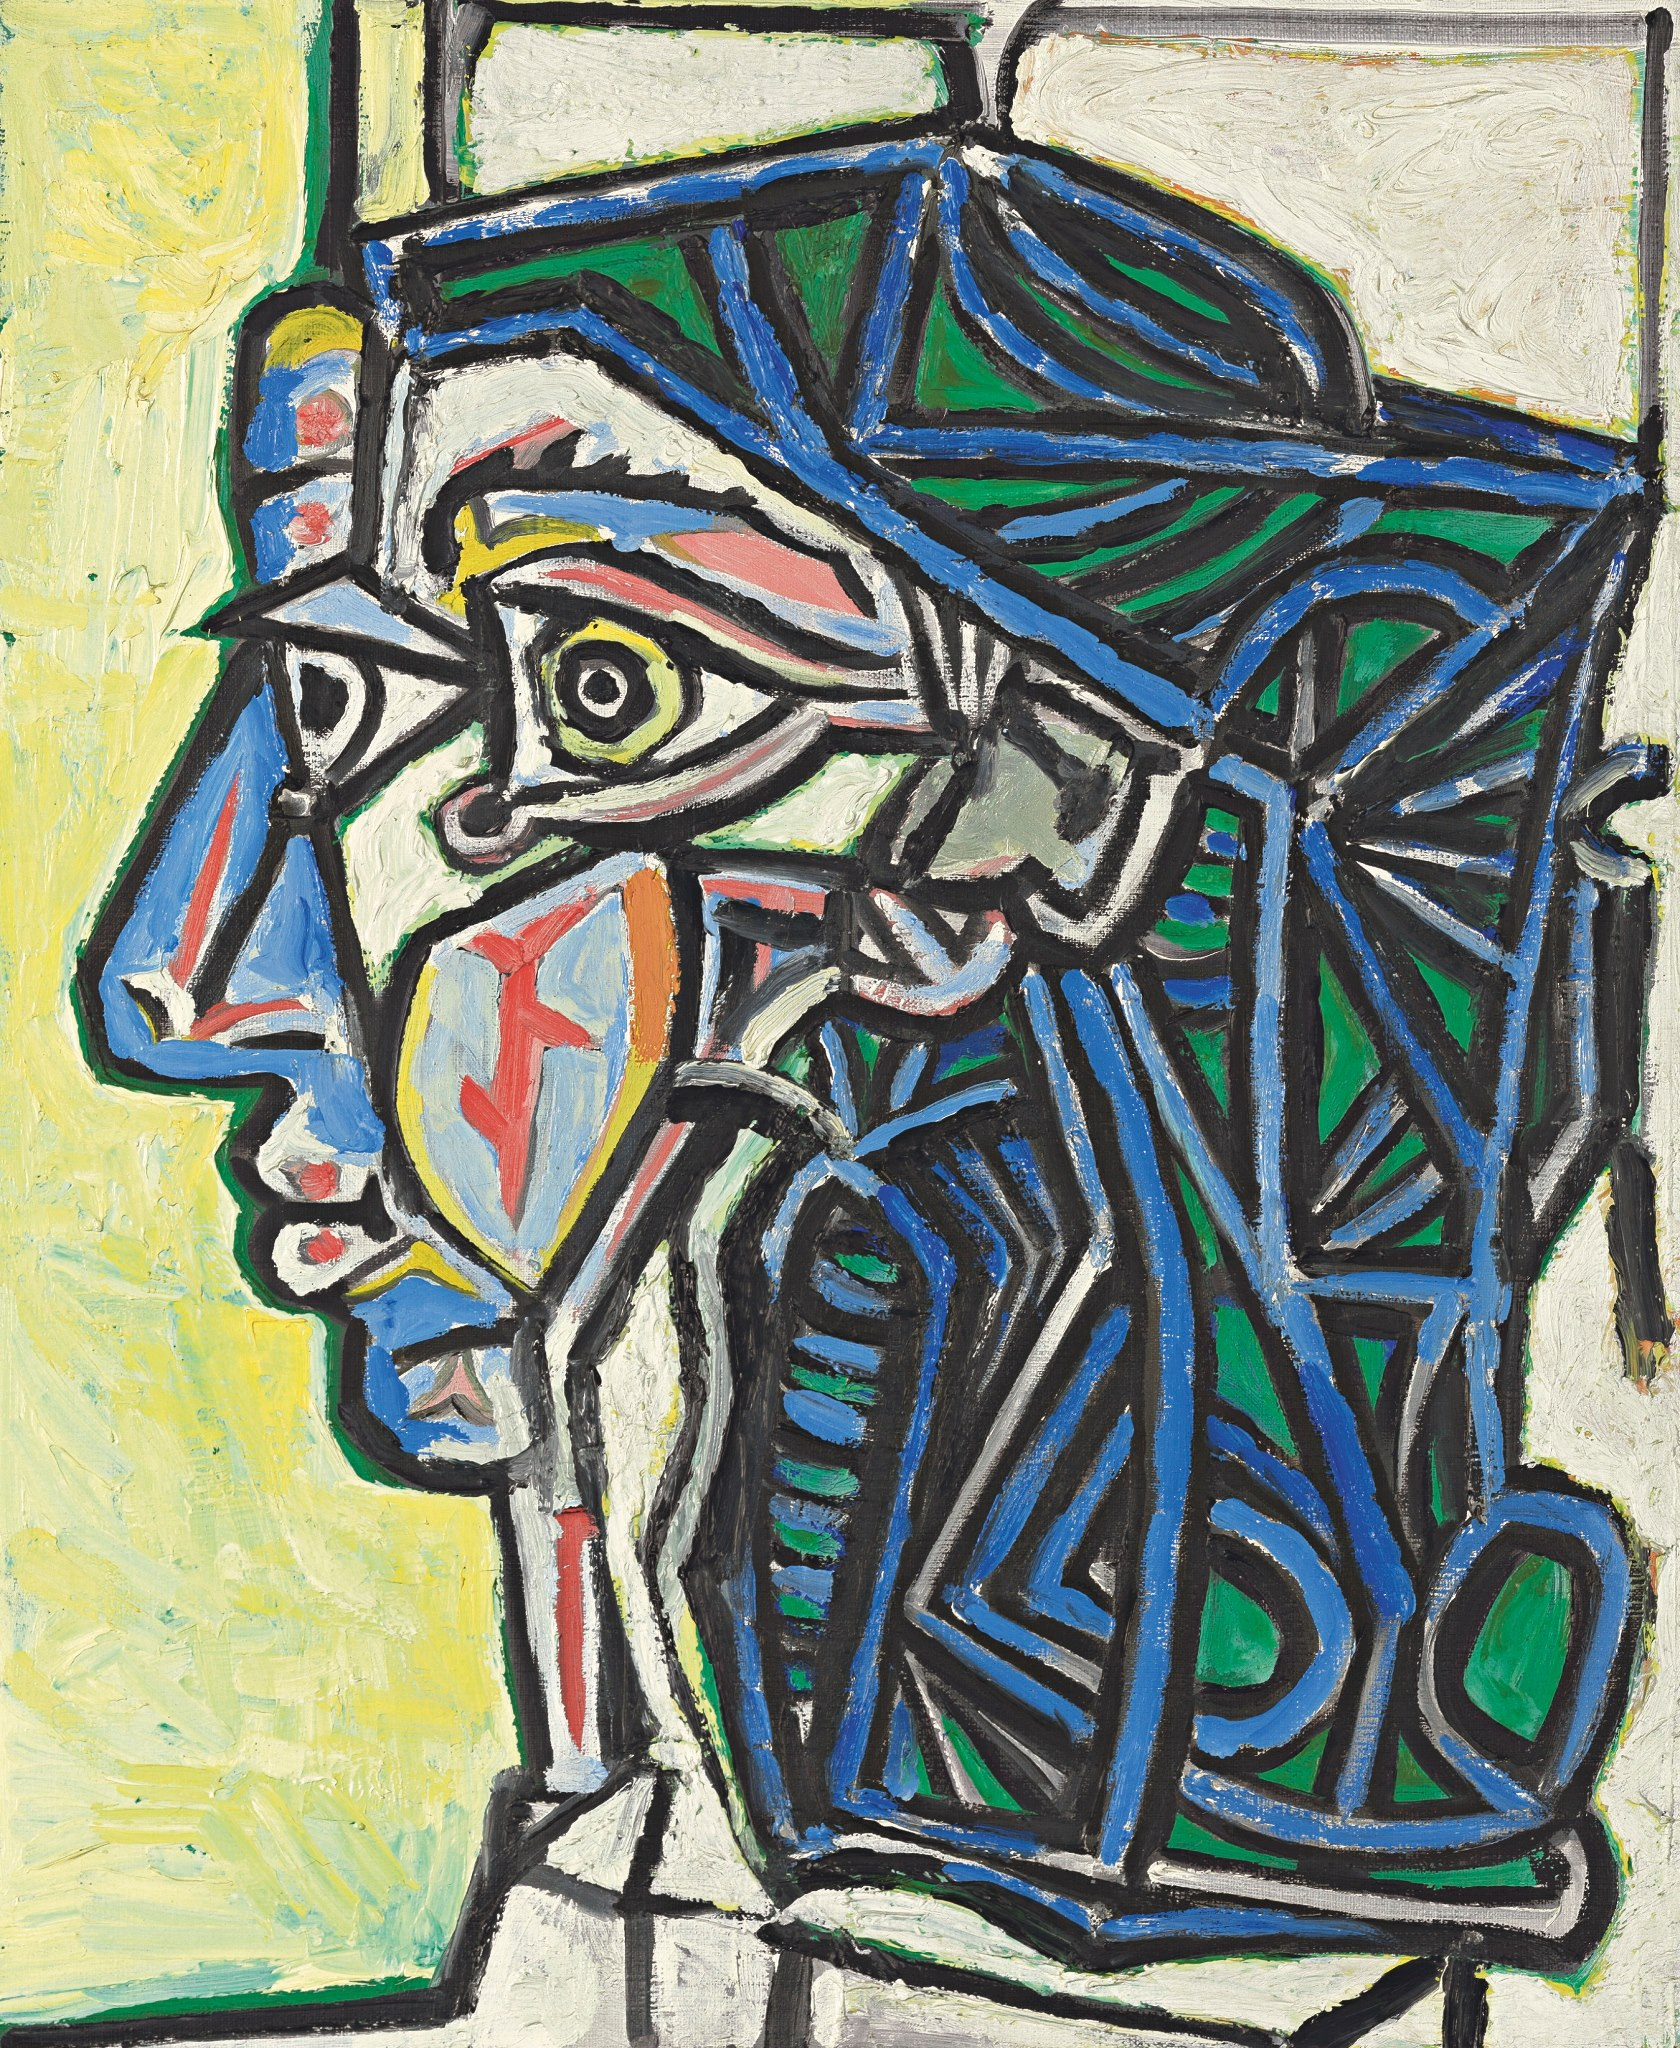 Pablo Picasso S Painting Girl Before A Mirror Reflects His